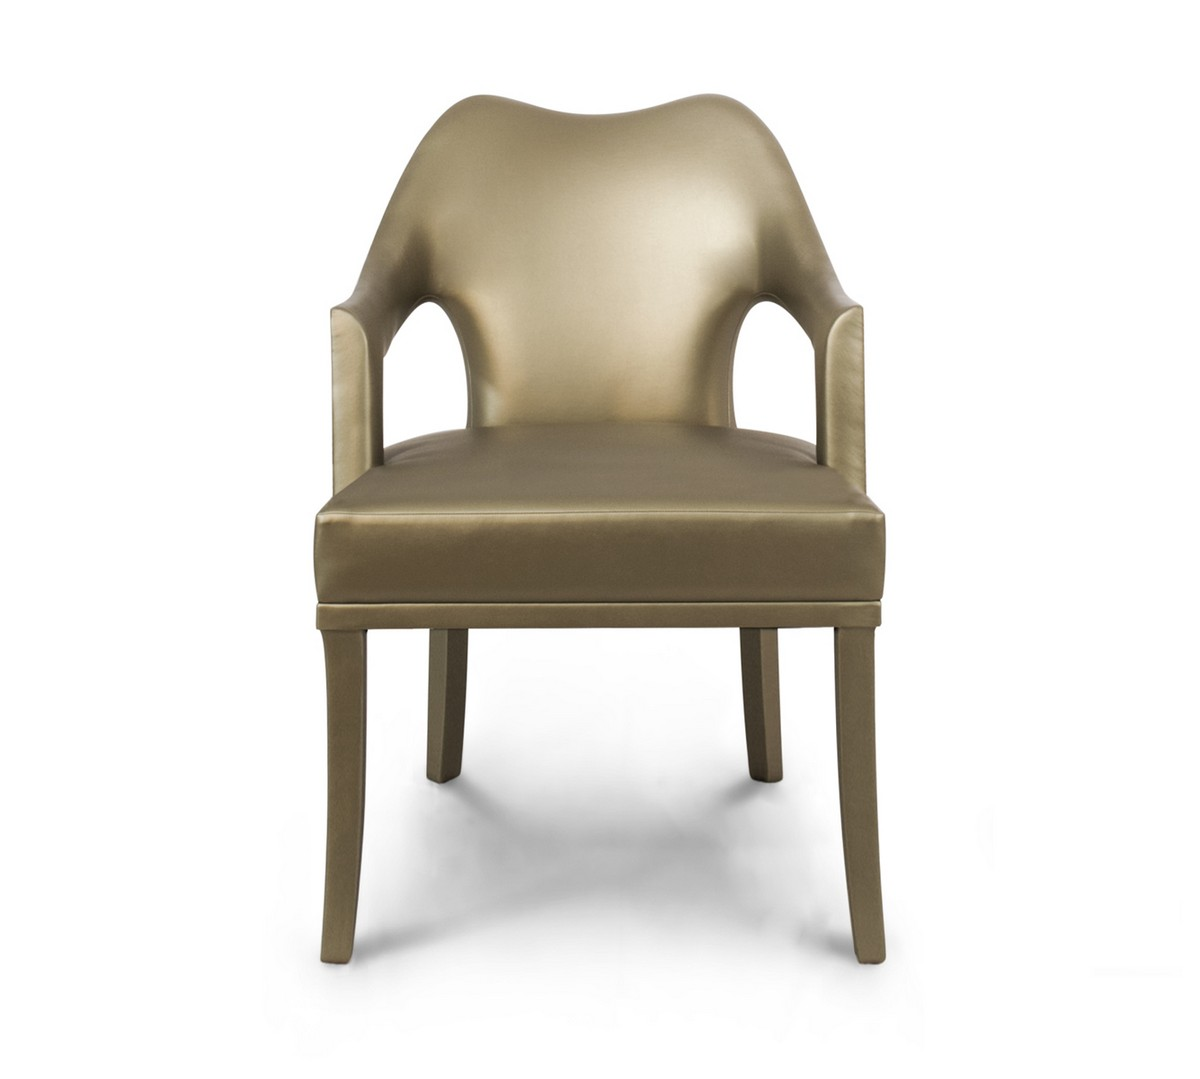 dining chair Covet Outlet: New Dining Chair Entries n20 1